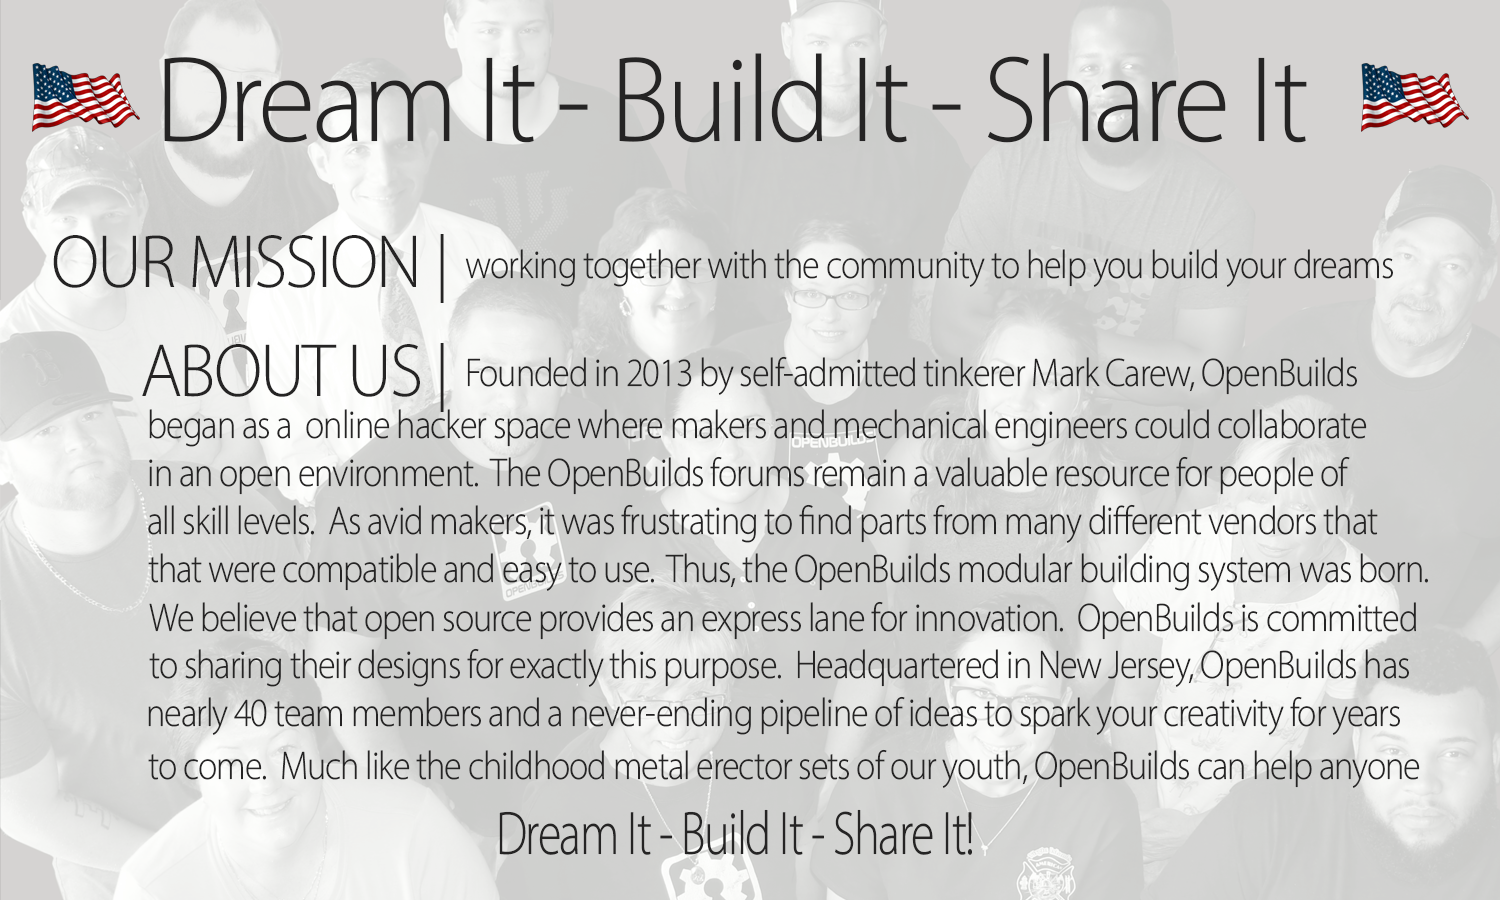 openbuilds-team-whitefilter-aboutus-v2c.png